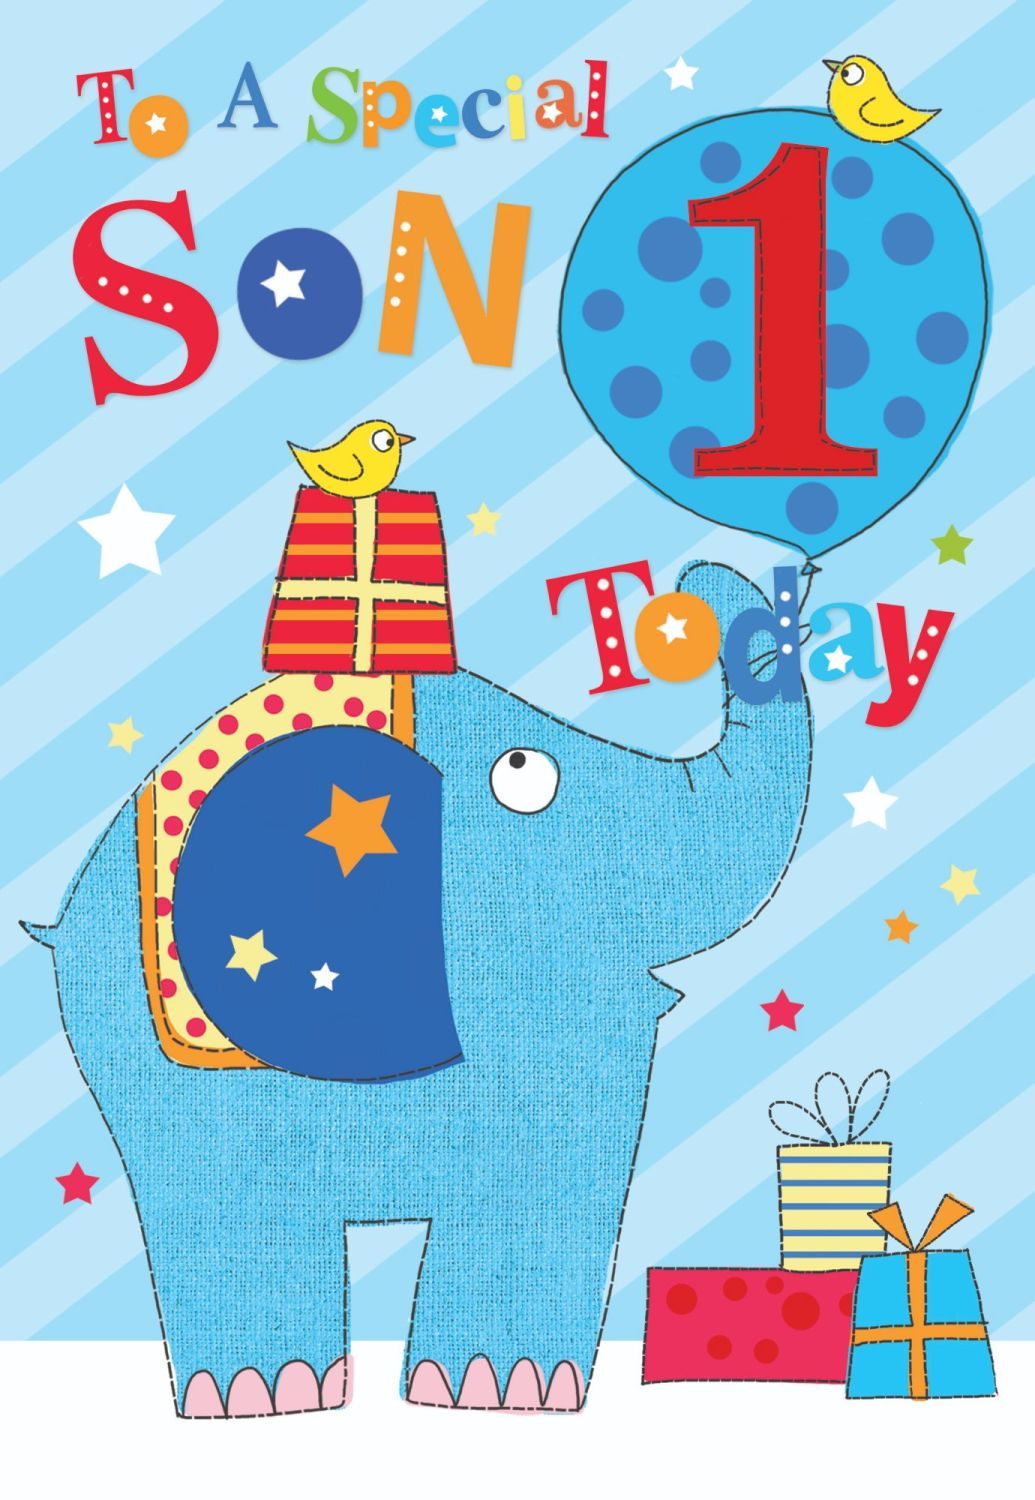 1st Birthday Cards For Special Son - TO A Special SON - YOU Are 1 TODAY - C